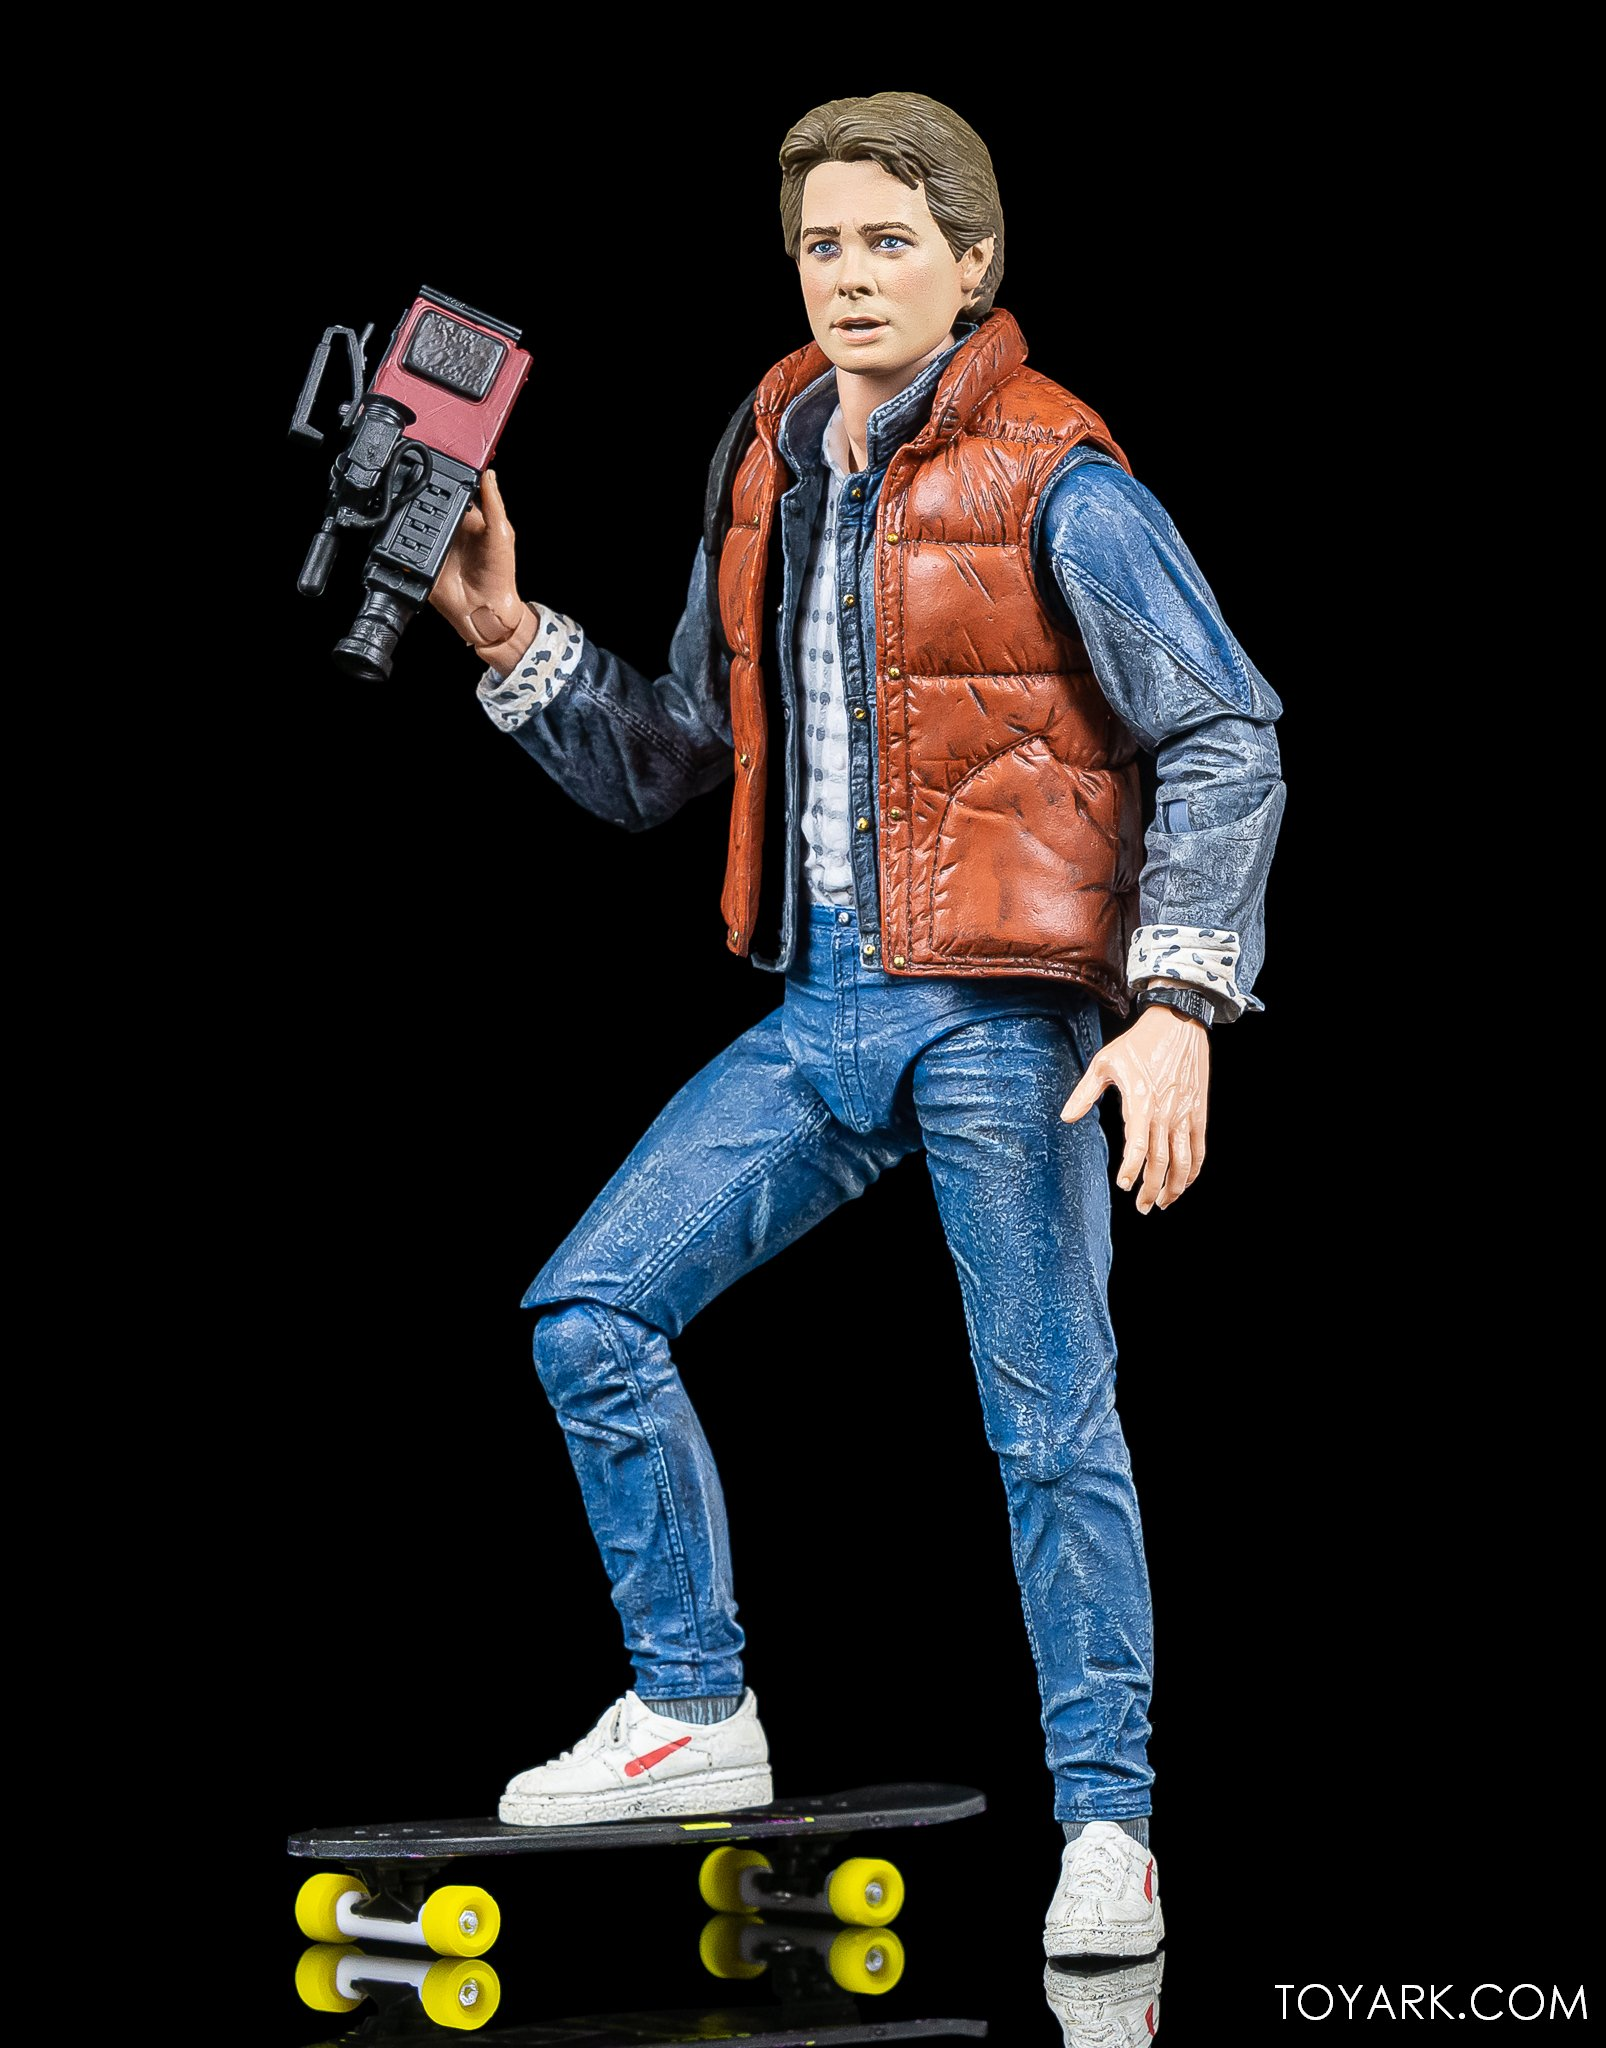 https://news.toyark.com/wp-content/uploads/sites/4/2020/10/NECA-Ultimate-Marty-McFly-Figure-007.jpg